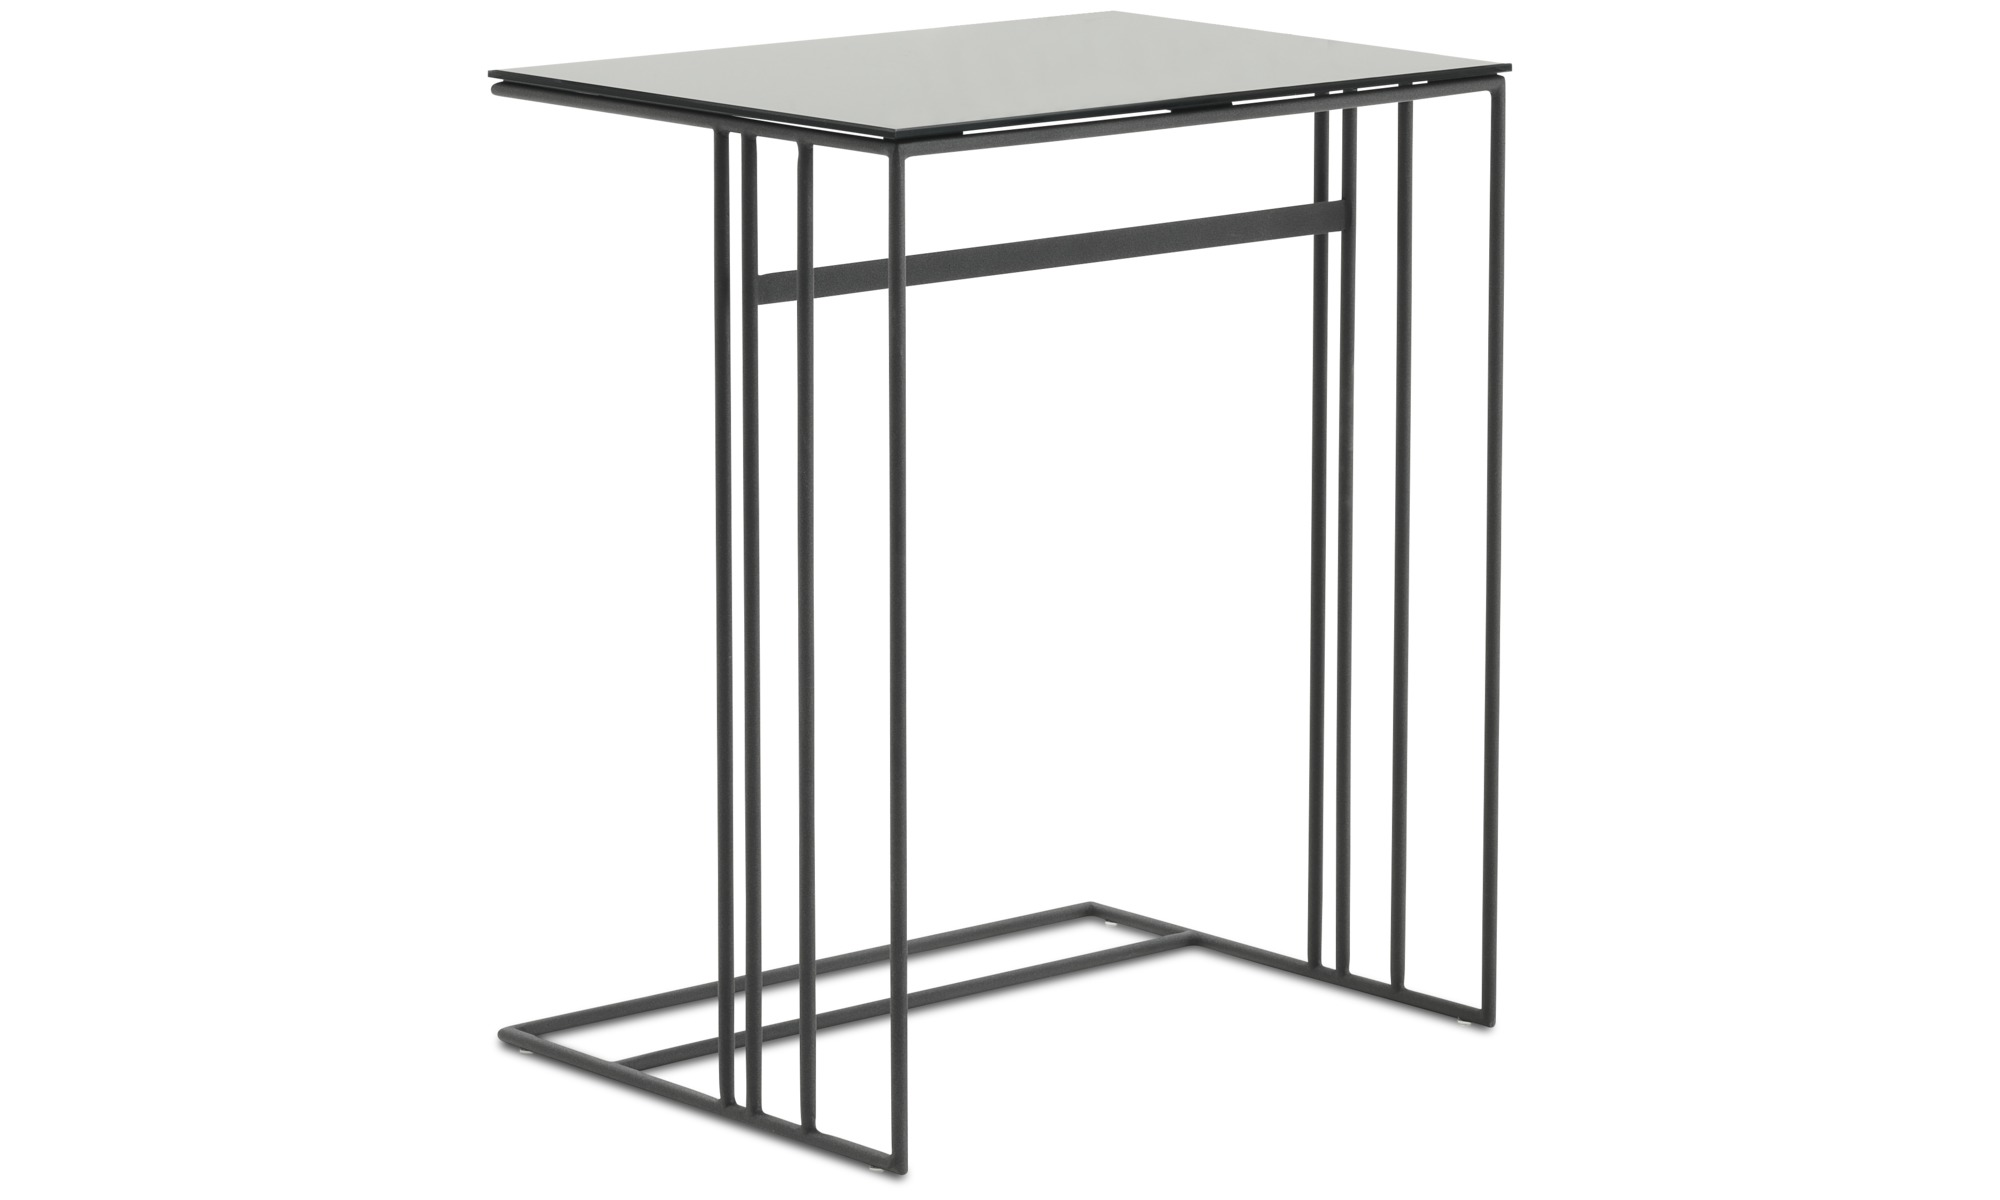 Coffee tables alba side table boconcept - Mesa auxiliar malm ikea ...